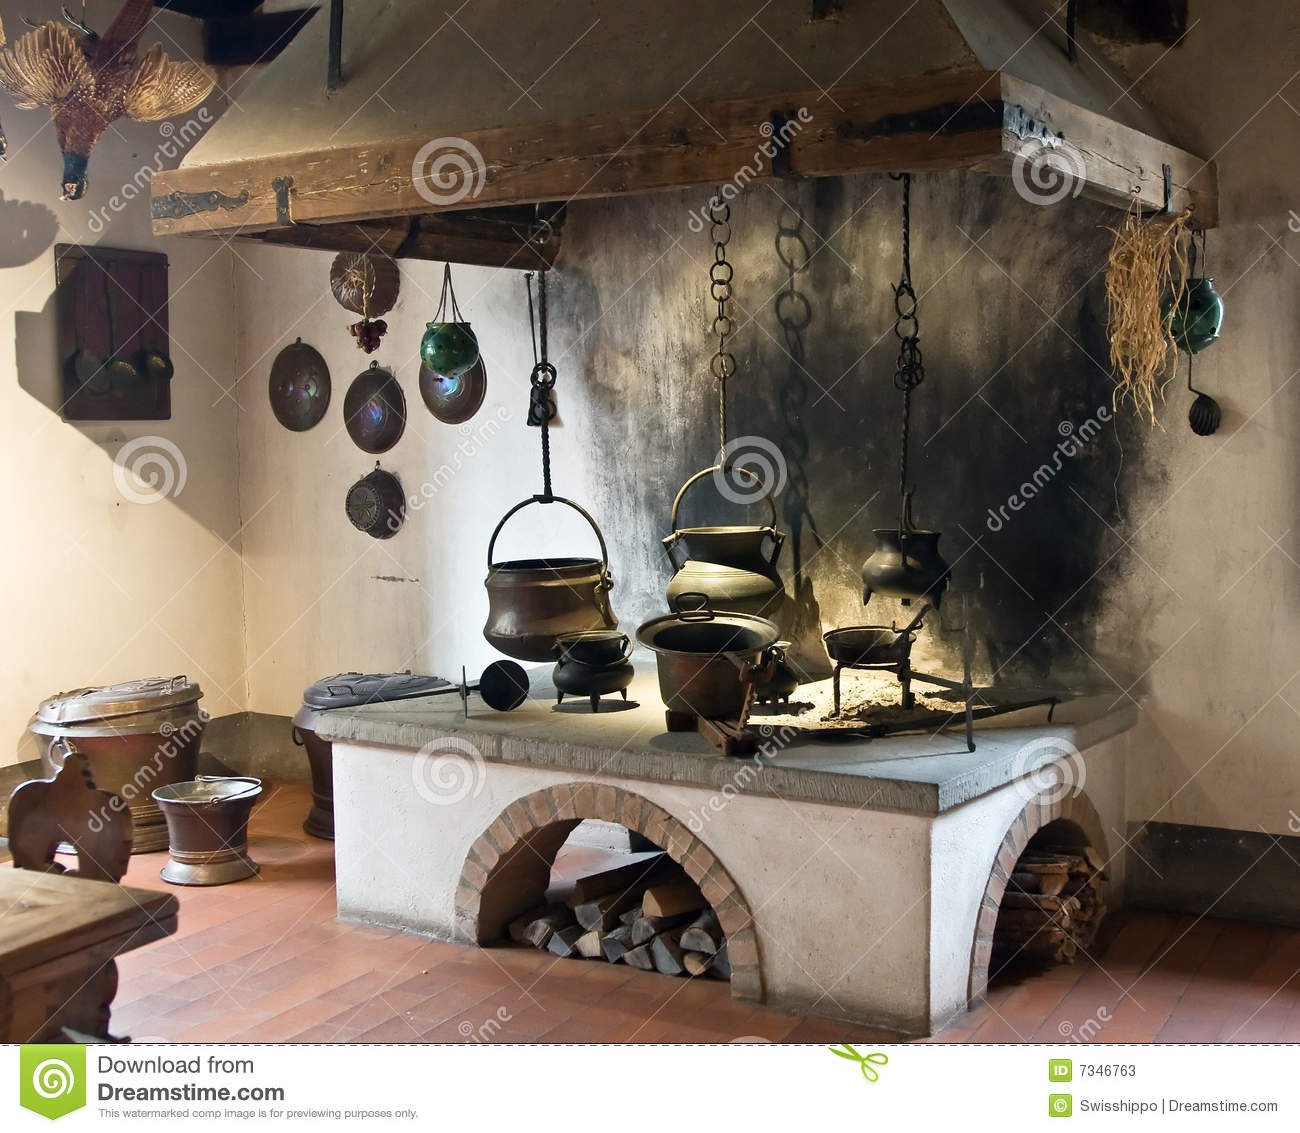 Cocina Medieval Ancient Kitchen Stock Image Image Of Oven Cook